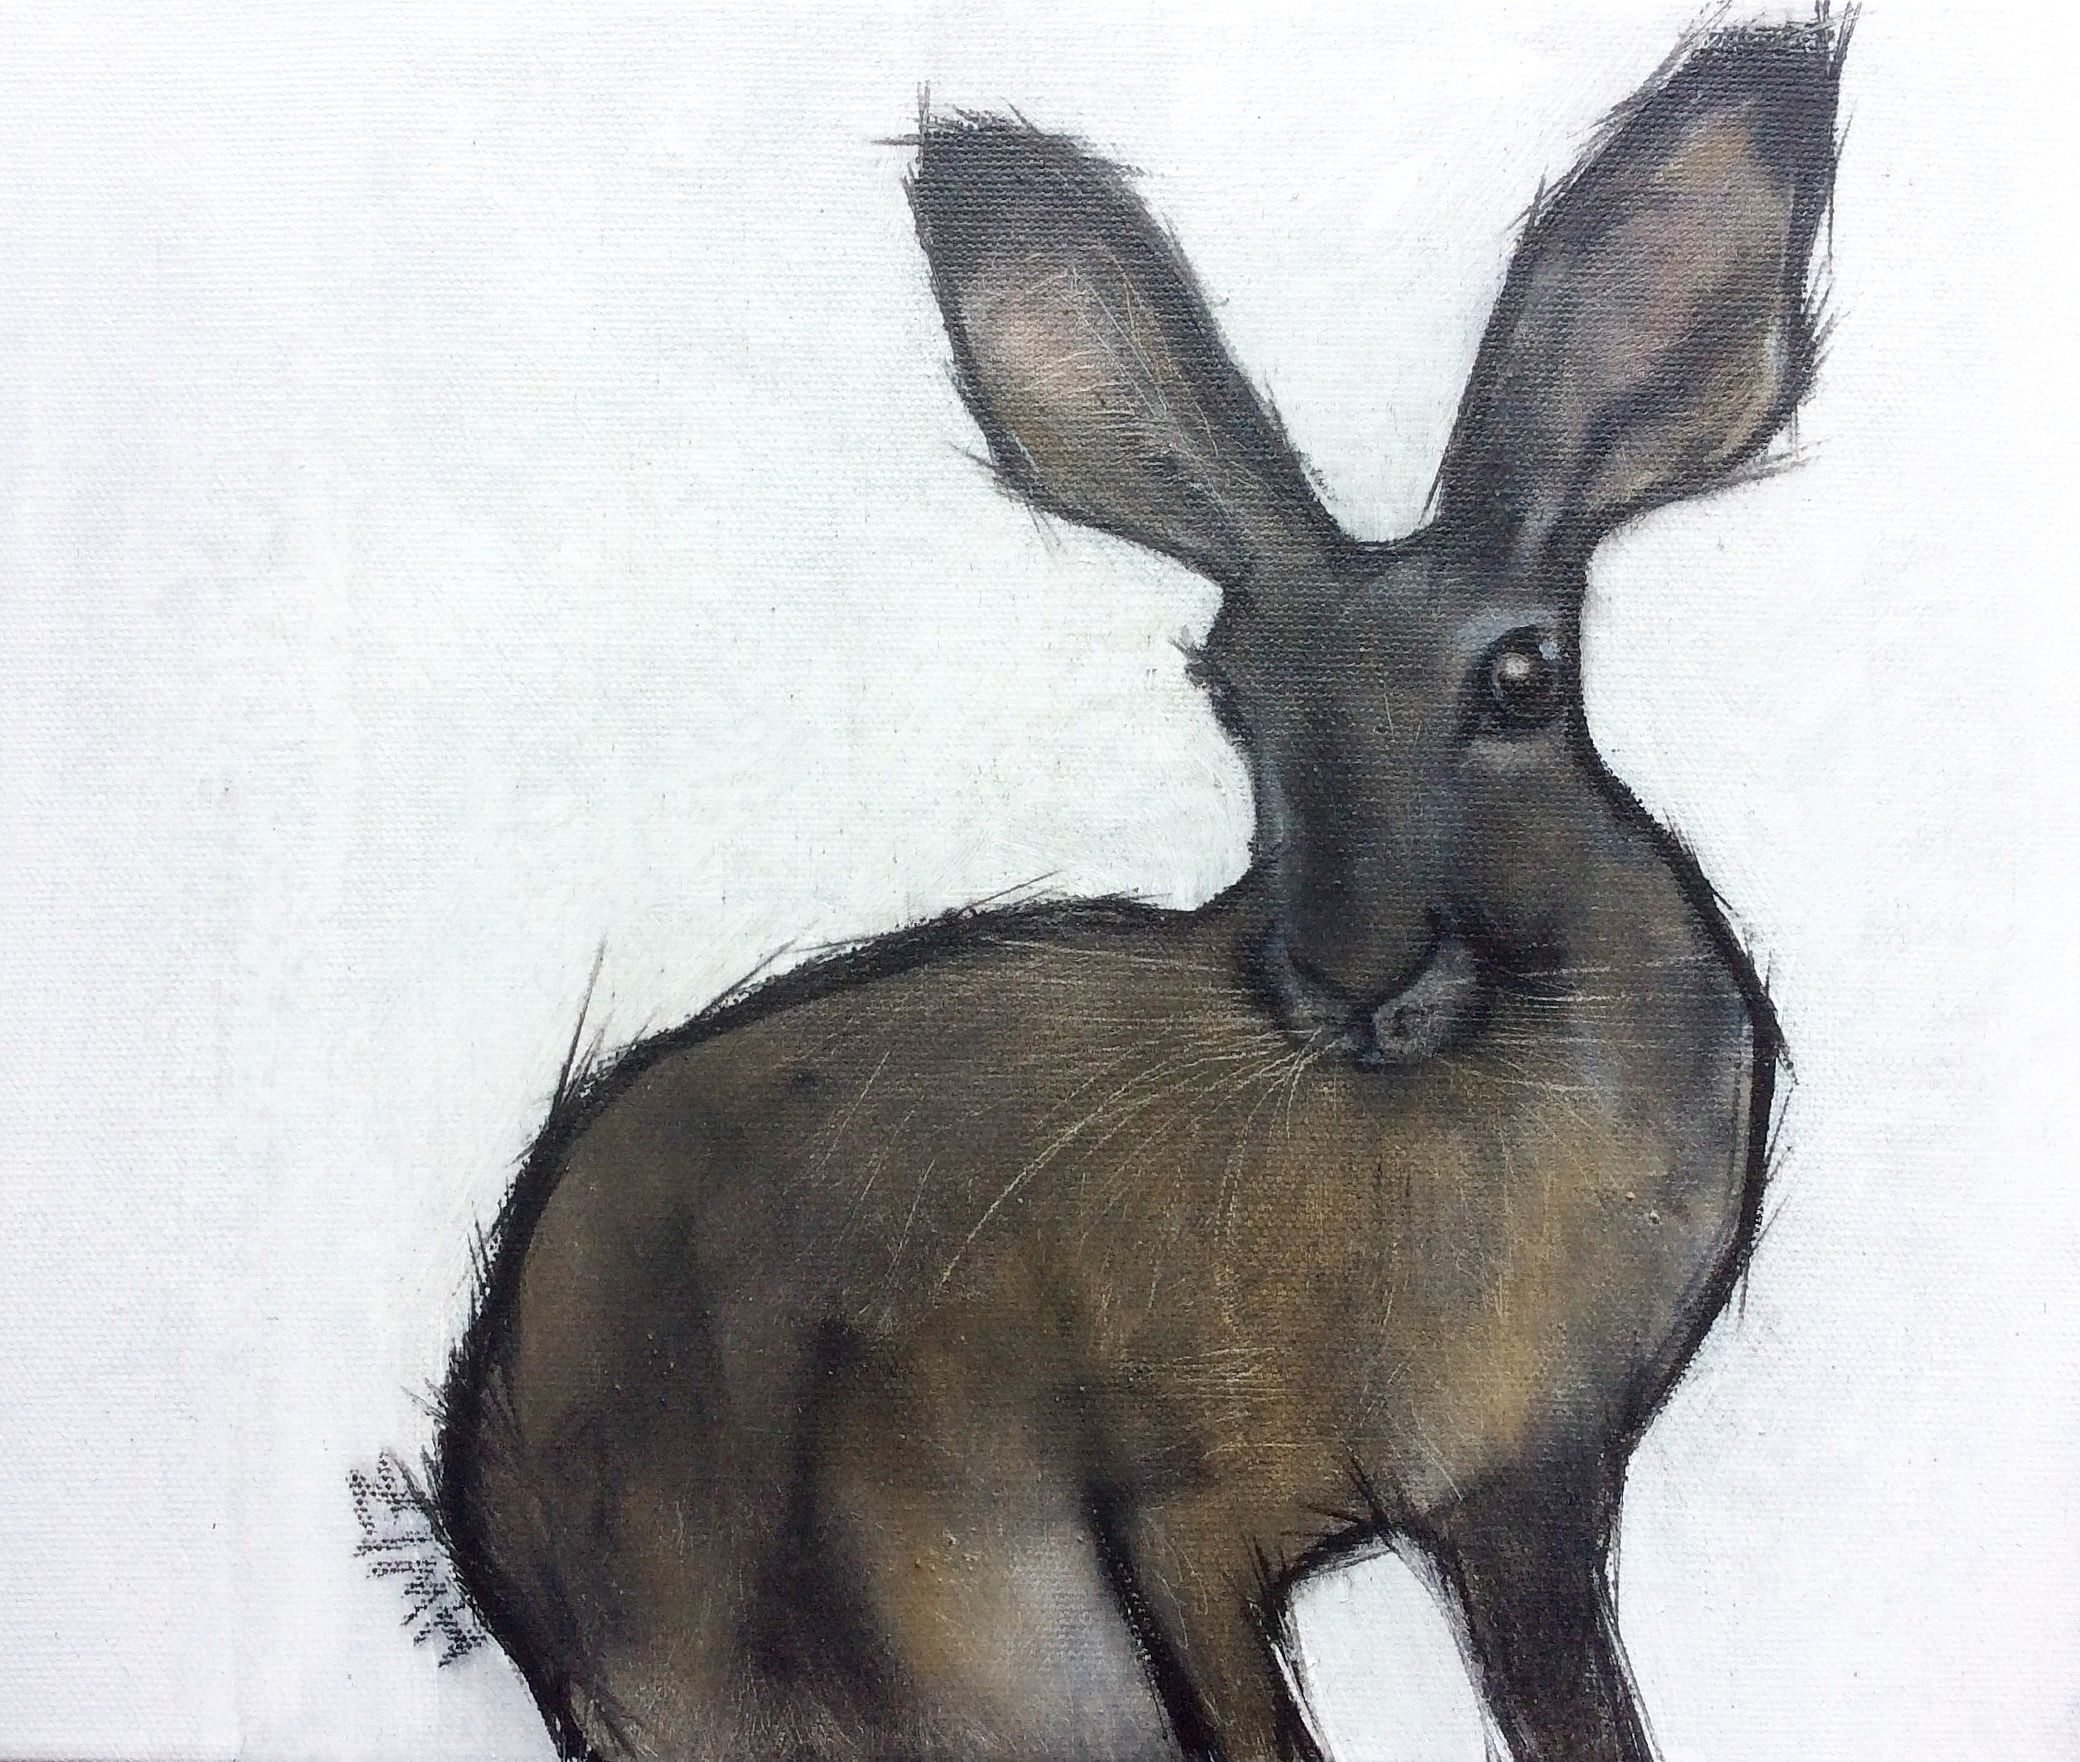 Small brown hare